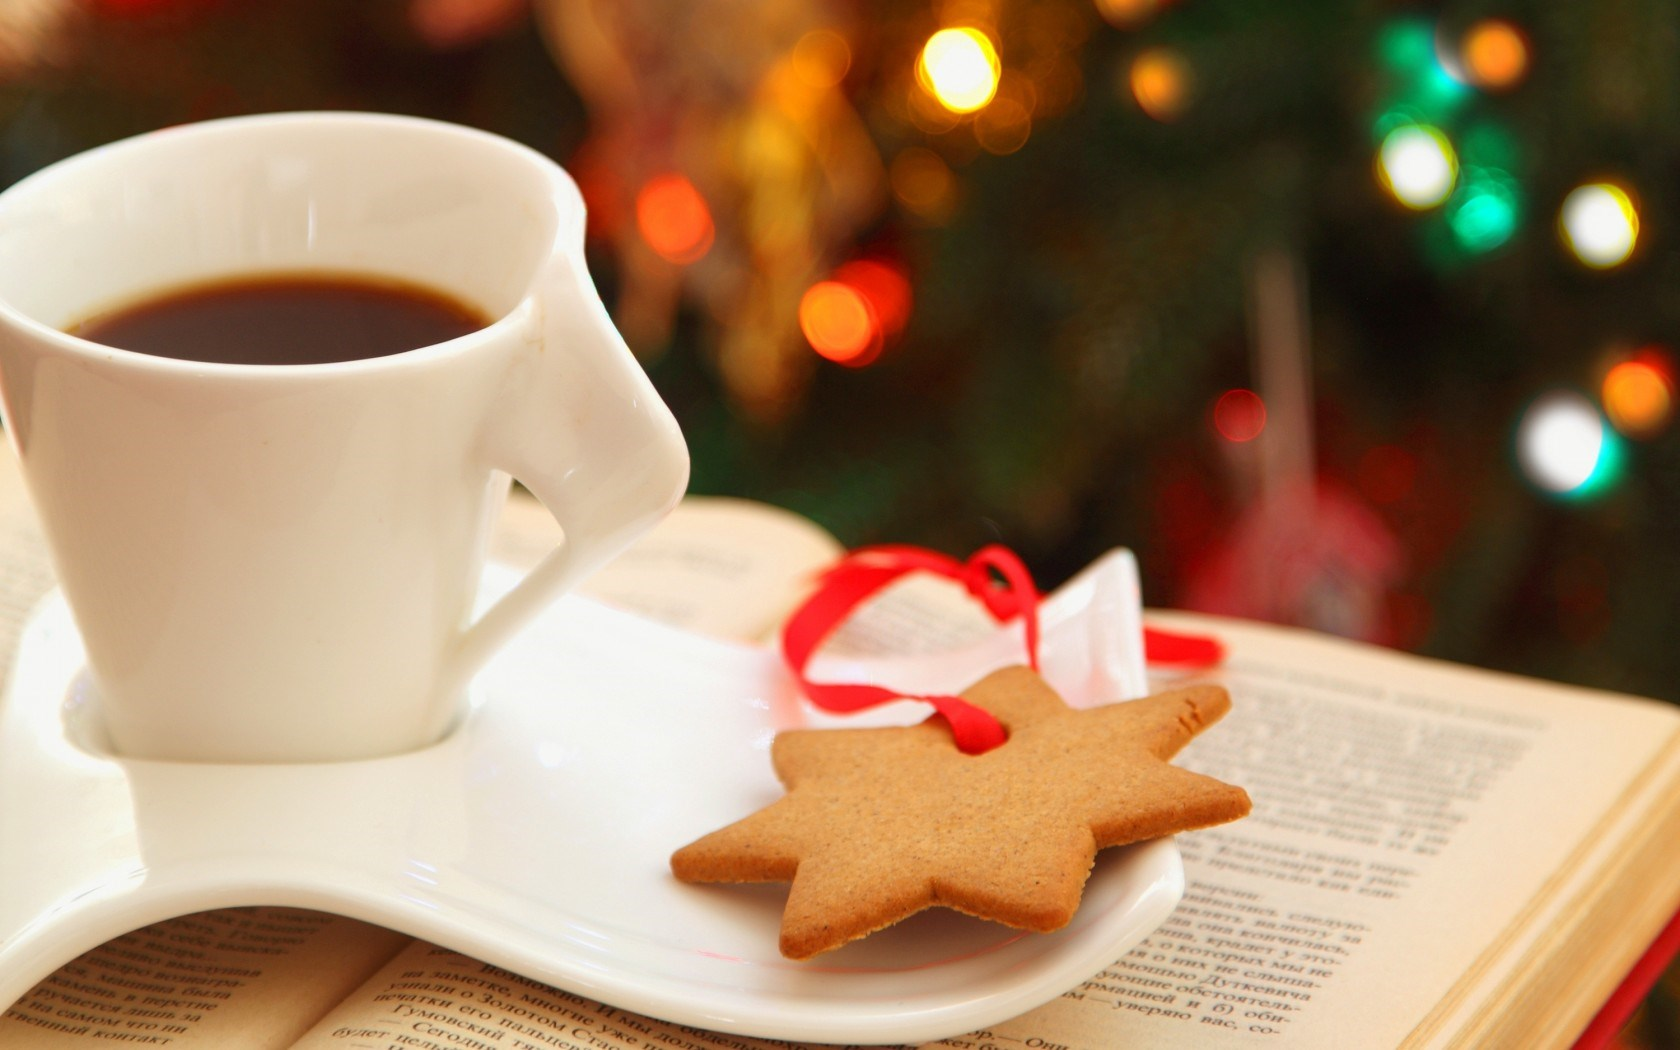 Cup Coffee Cookies Star Book Lights Bokeh Christmas